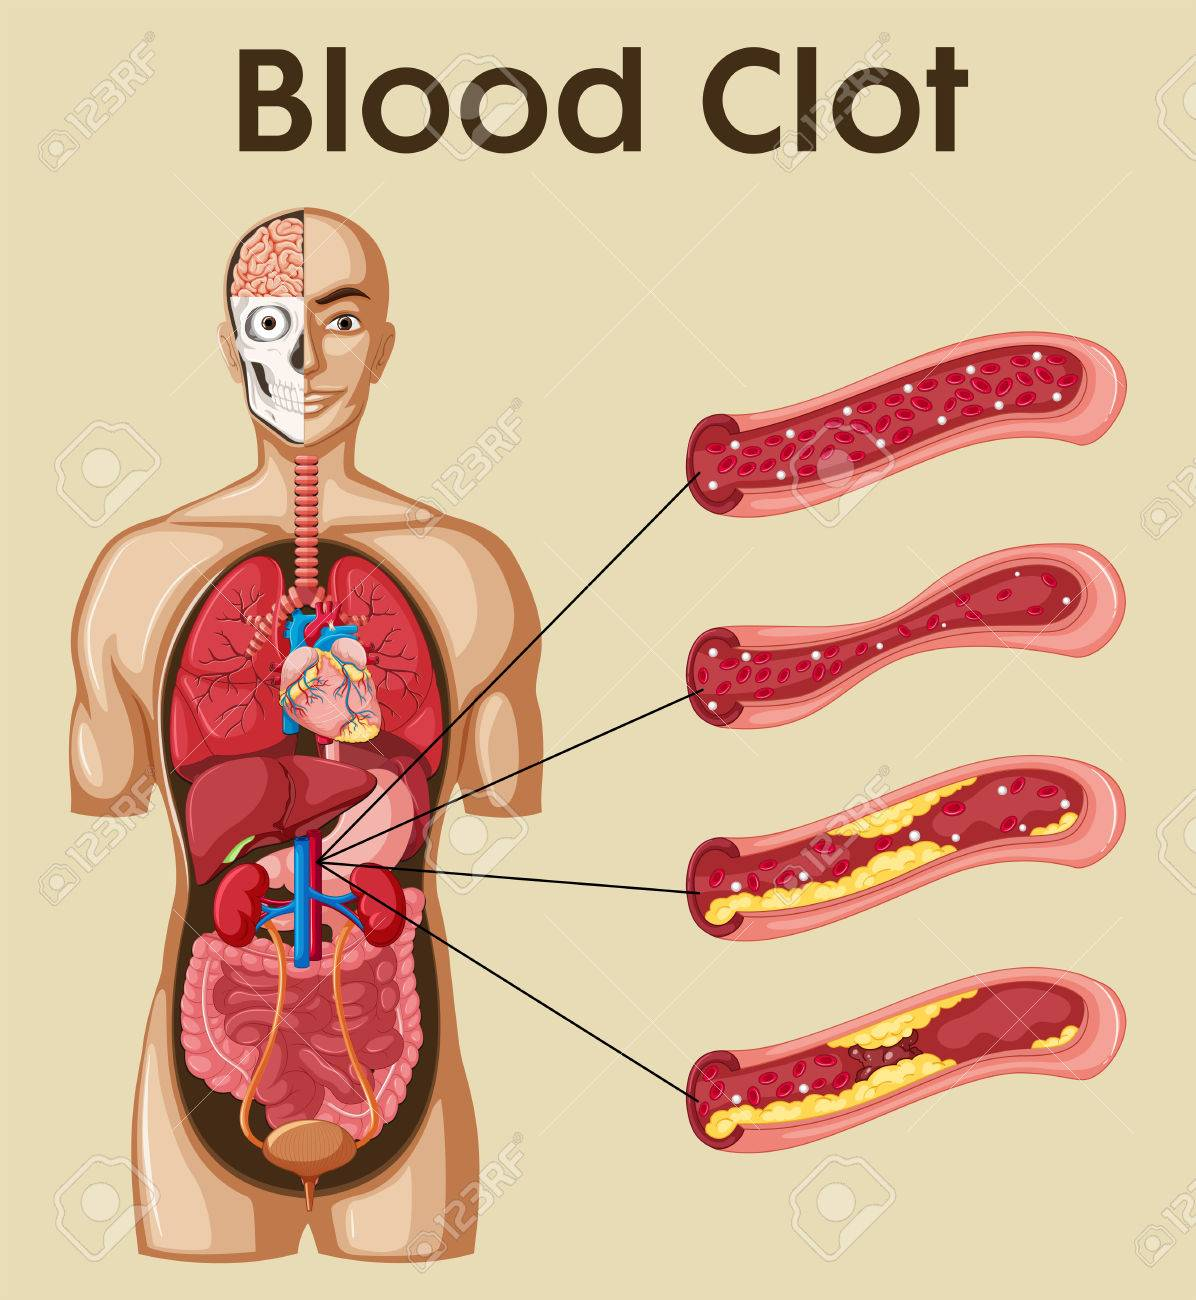 Diagram Showing Blood Clot In Human Illustration Royalty Free